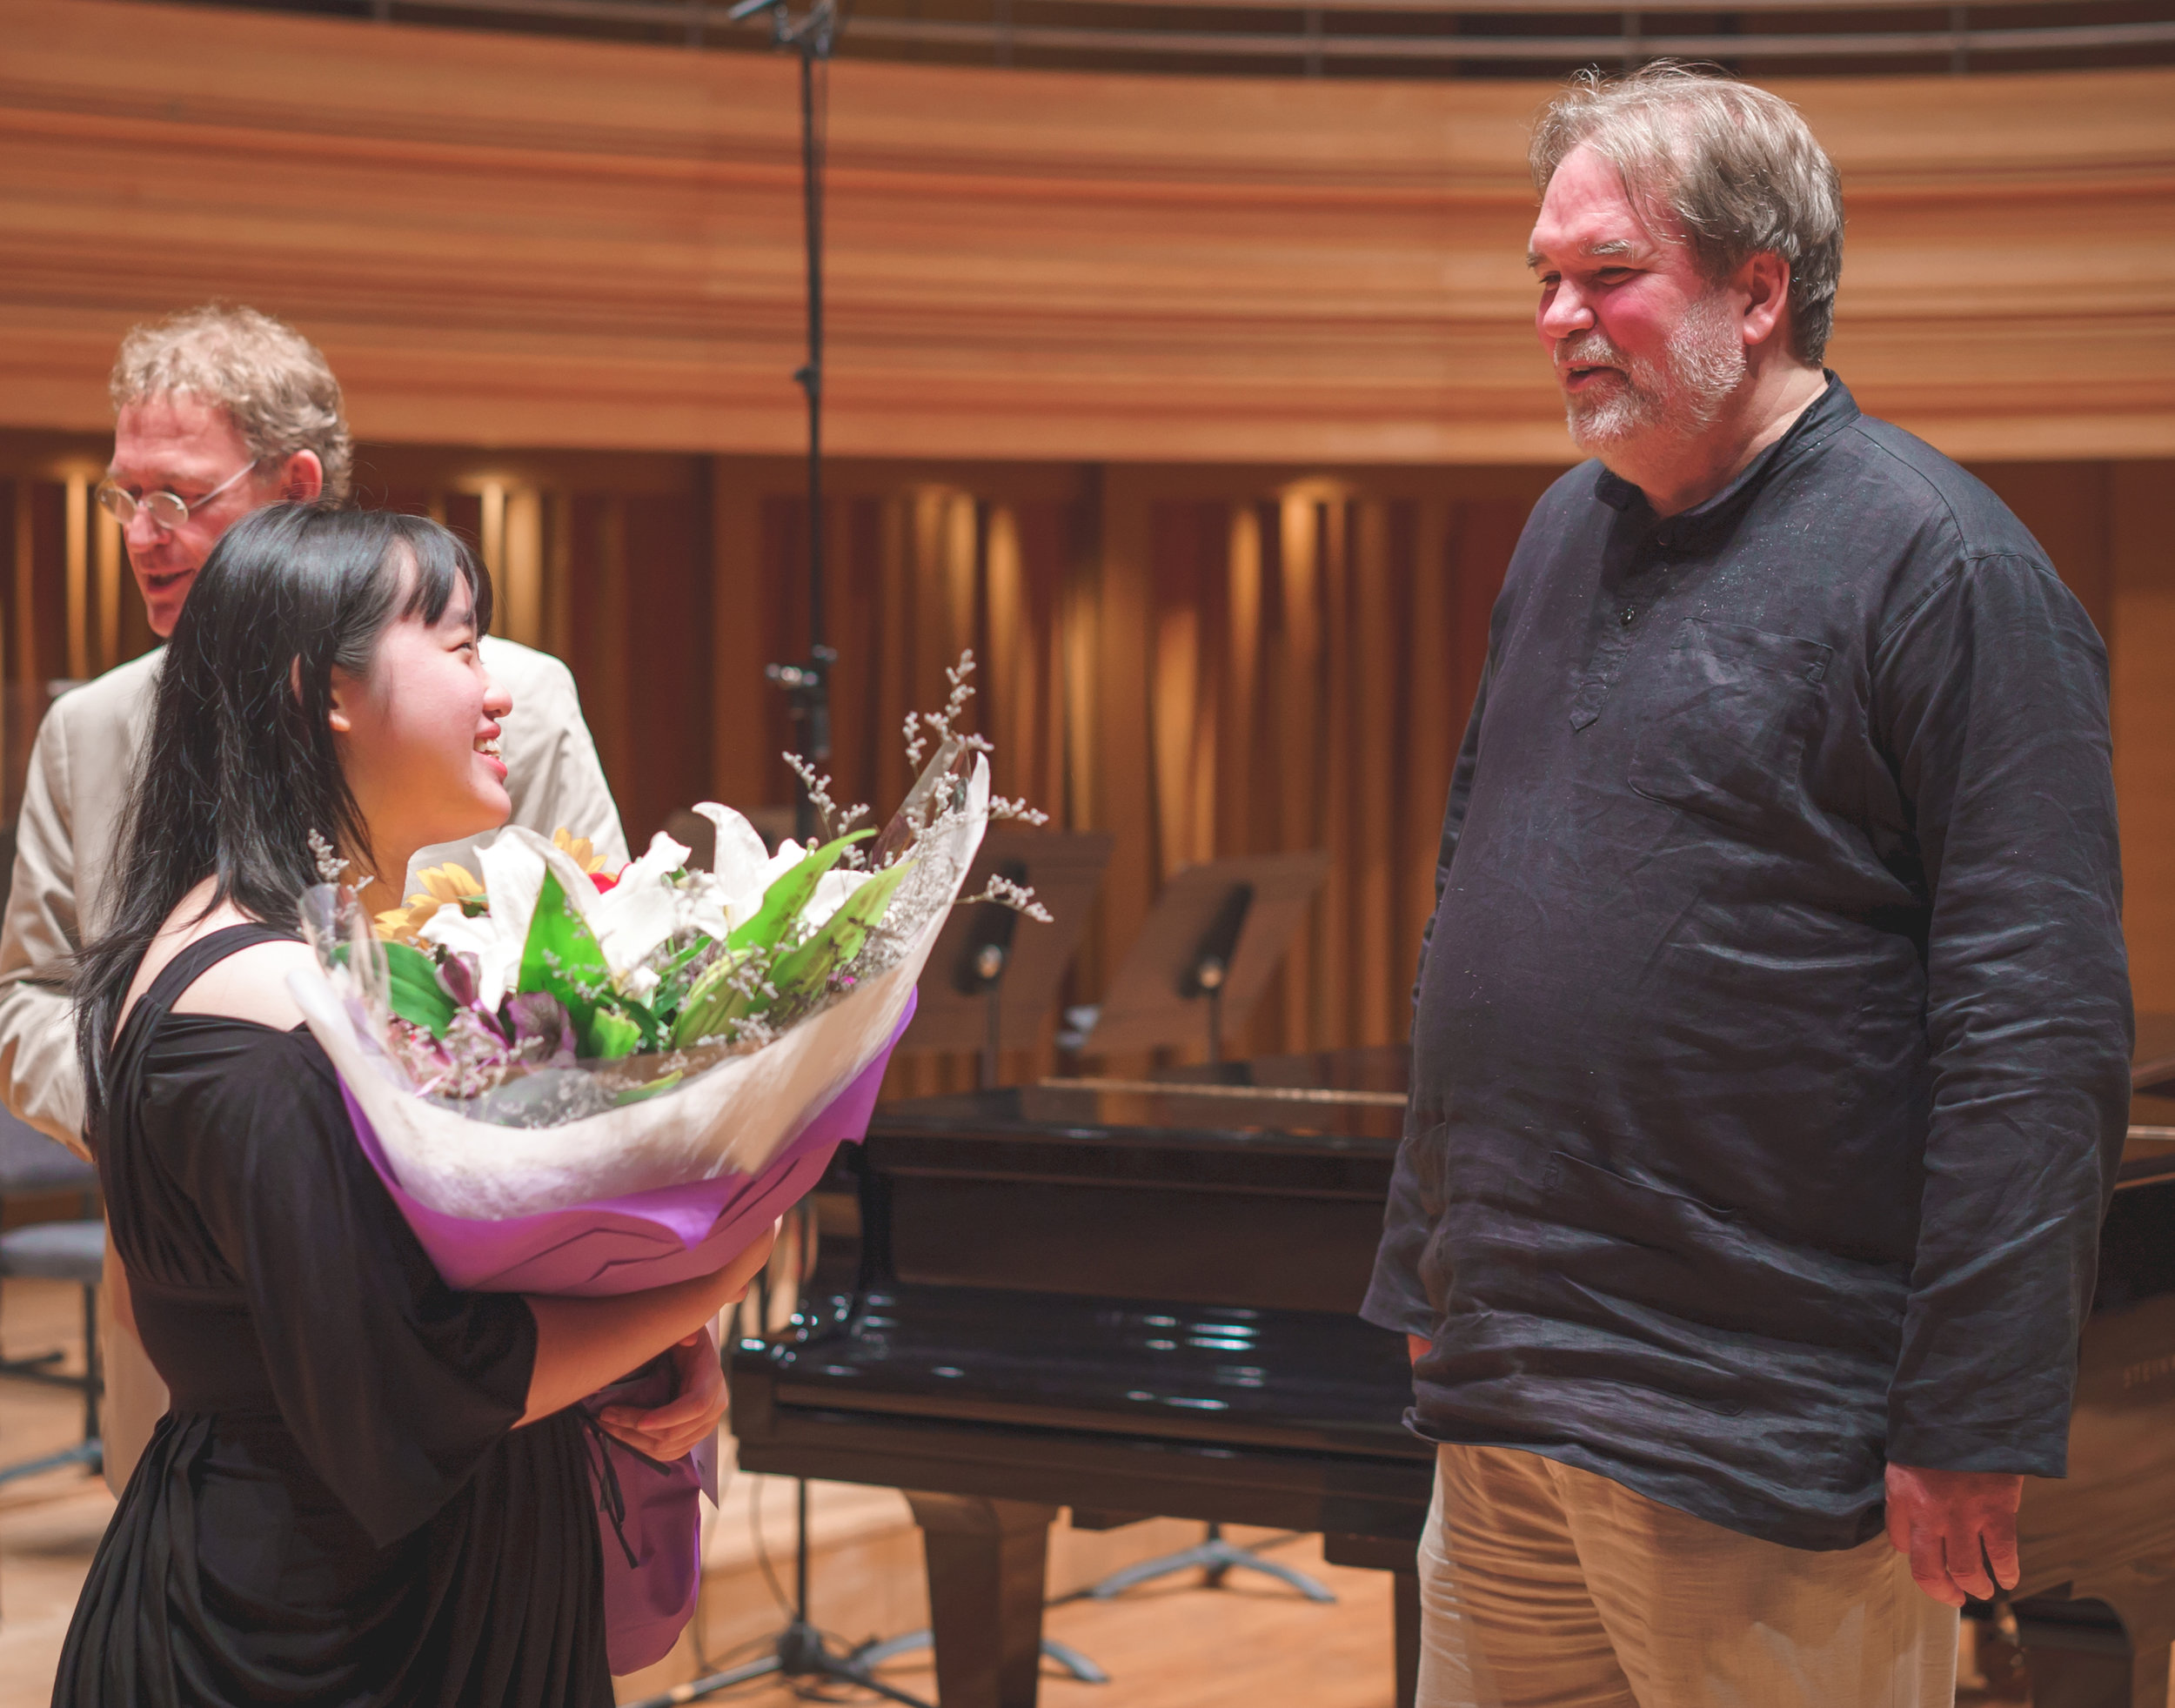 Above: Ho Qian Hui (left) after winning the Concerto Competition on 31 August, being congratulated by Professor Bernard Lanskey, Dean of the Conservatory